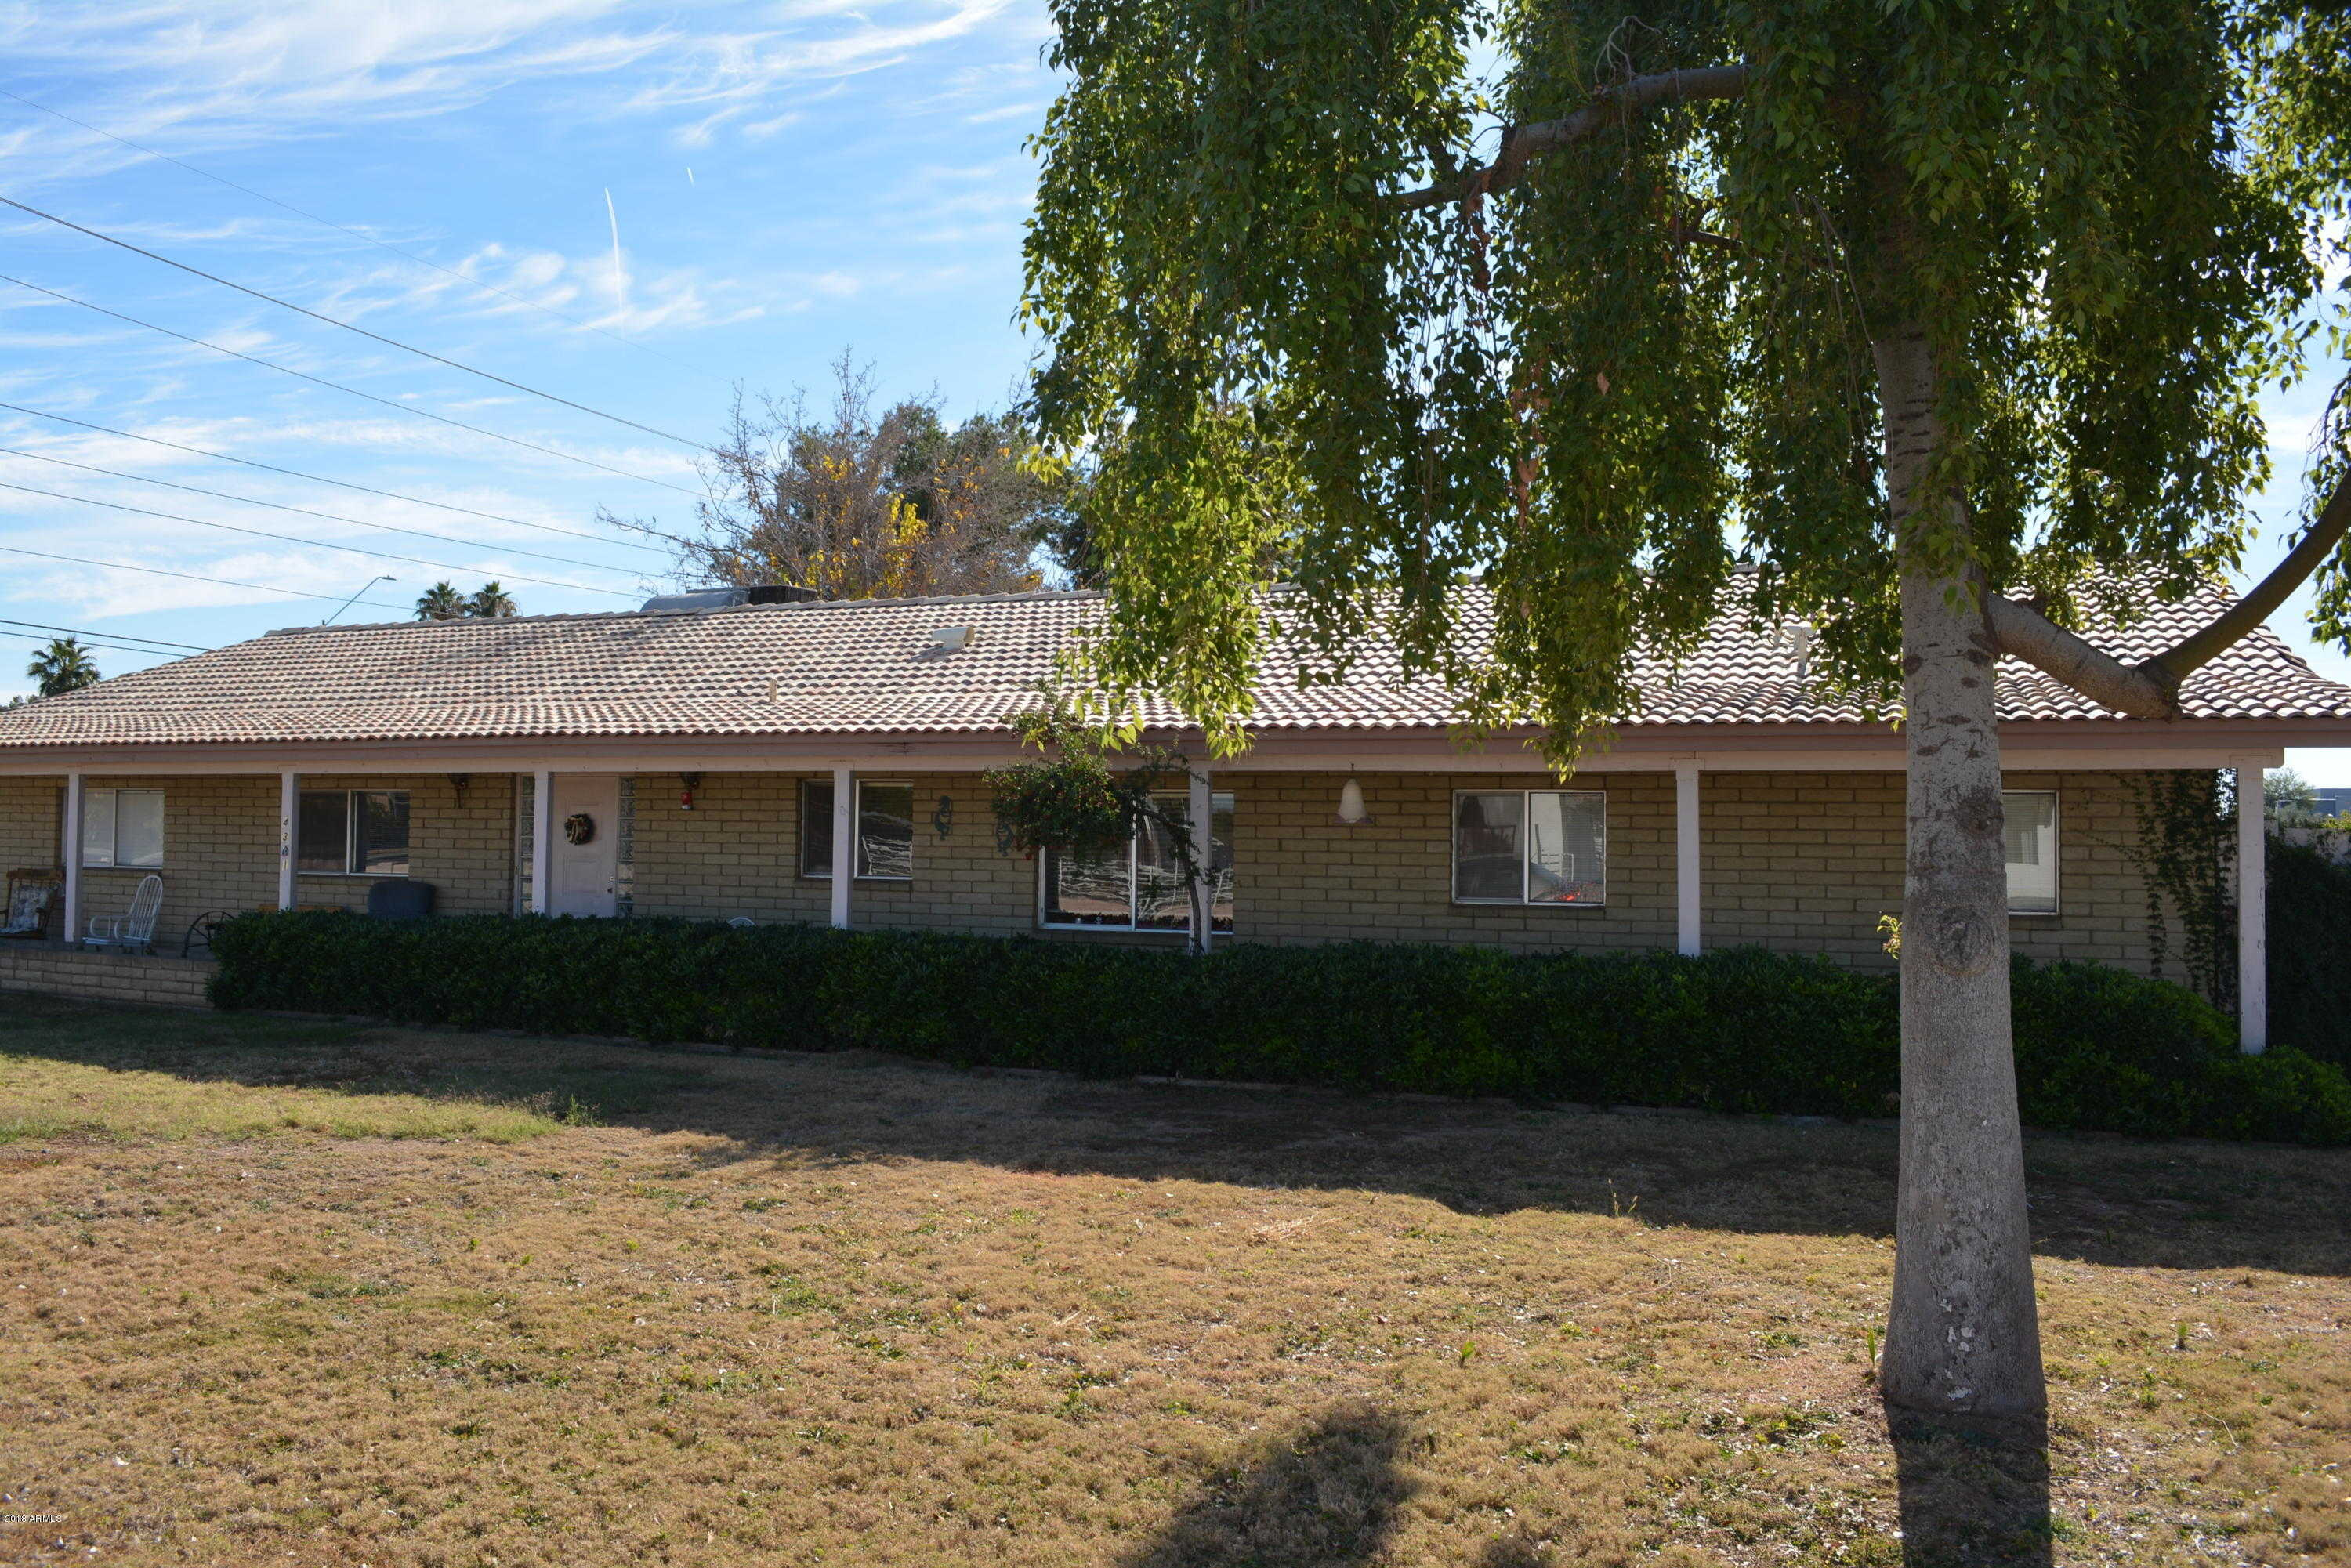 $429,000 - 5Br/3Ba - Home for Sale in Unknown, Glendale